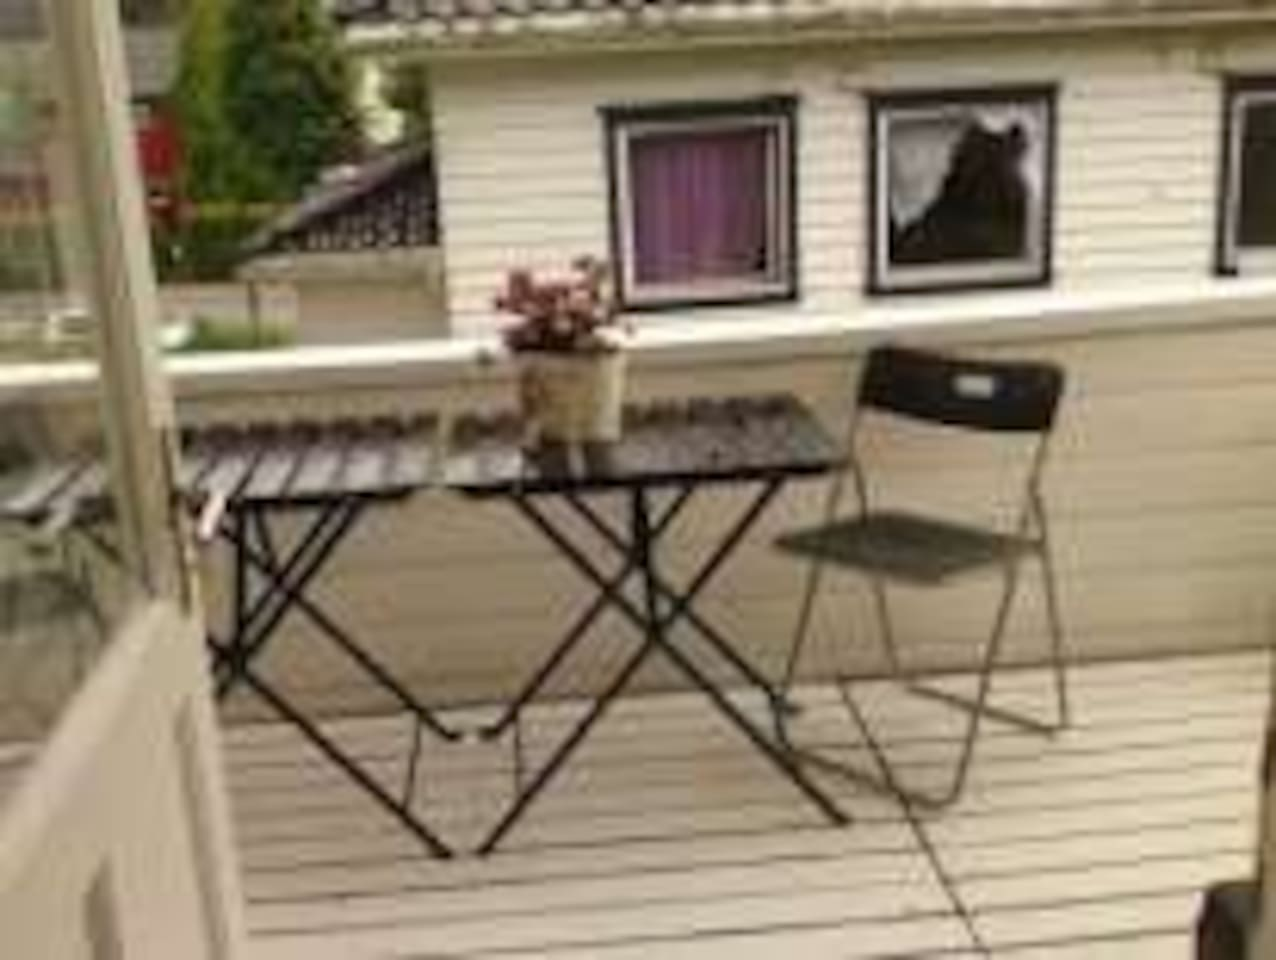 Terrasse for sunbading and enjoying meals. Also possible to dry your wash out in the fresh air.